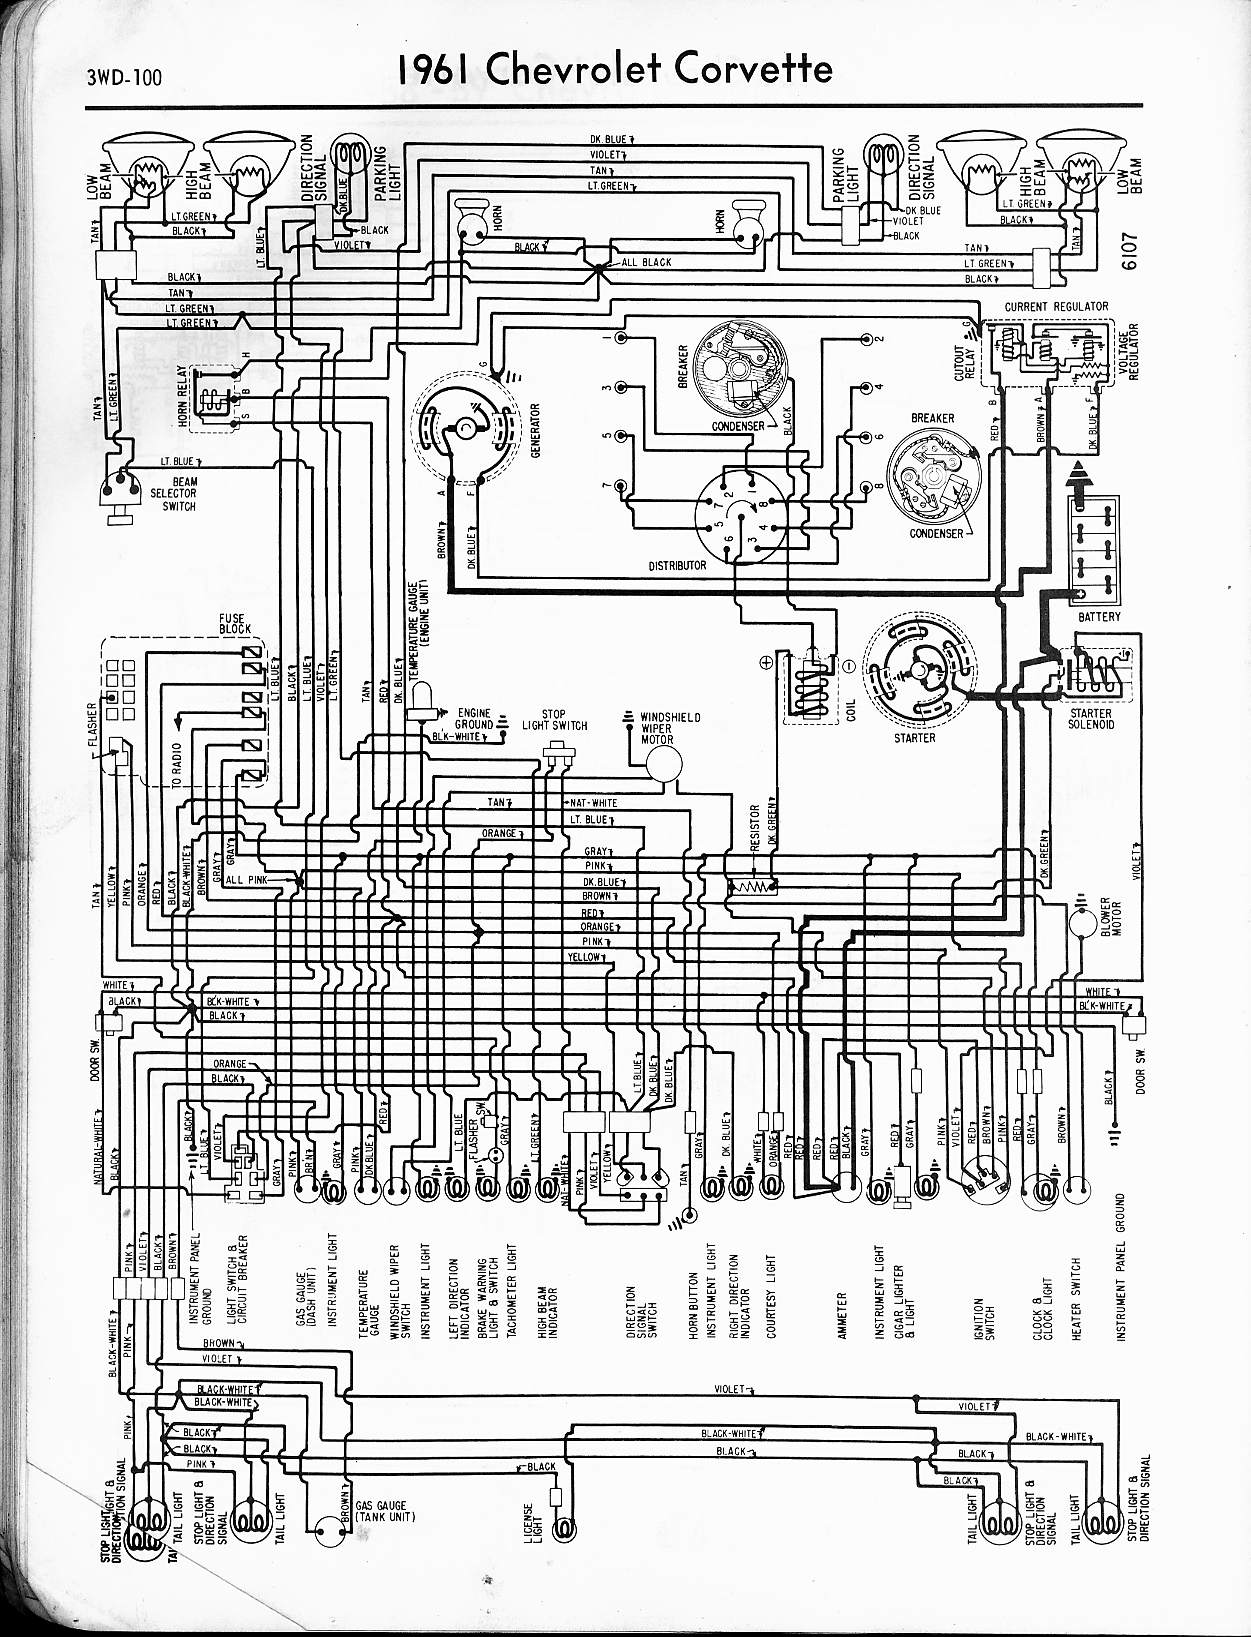 1957 Chevy Wiper Motor Wiring Diagram Schematic Reinvent Your Gm 1960 Impala Layout Diagrams U2022 Rh Laurafinlay Co Uk Chevelle